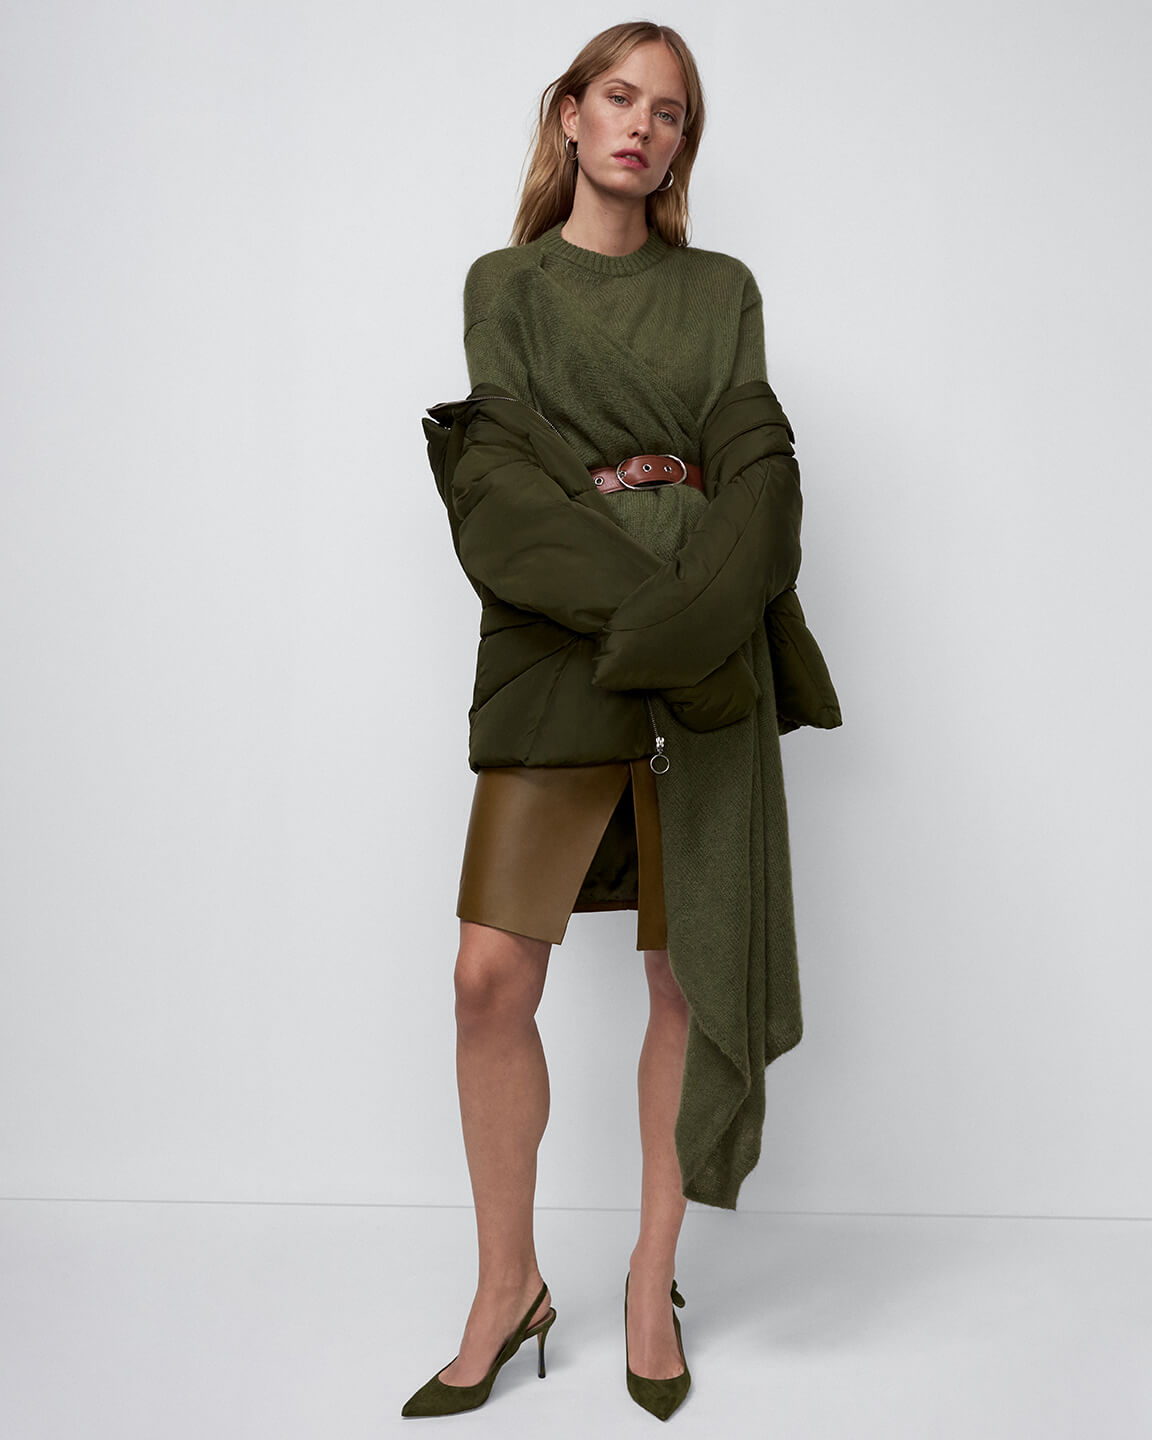 Andrew Marc Jacket and Officine Generale Skirt